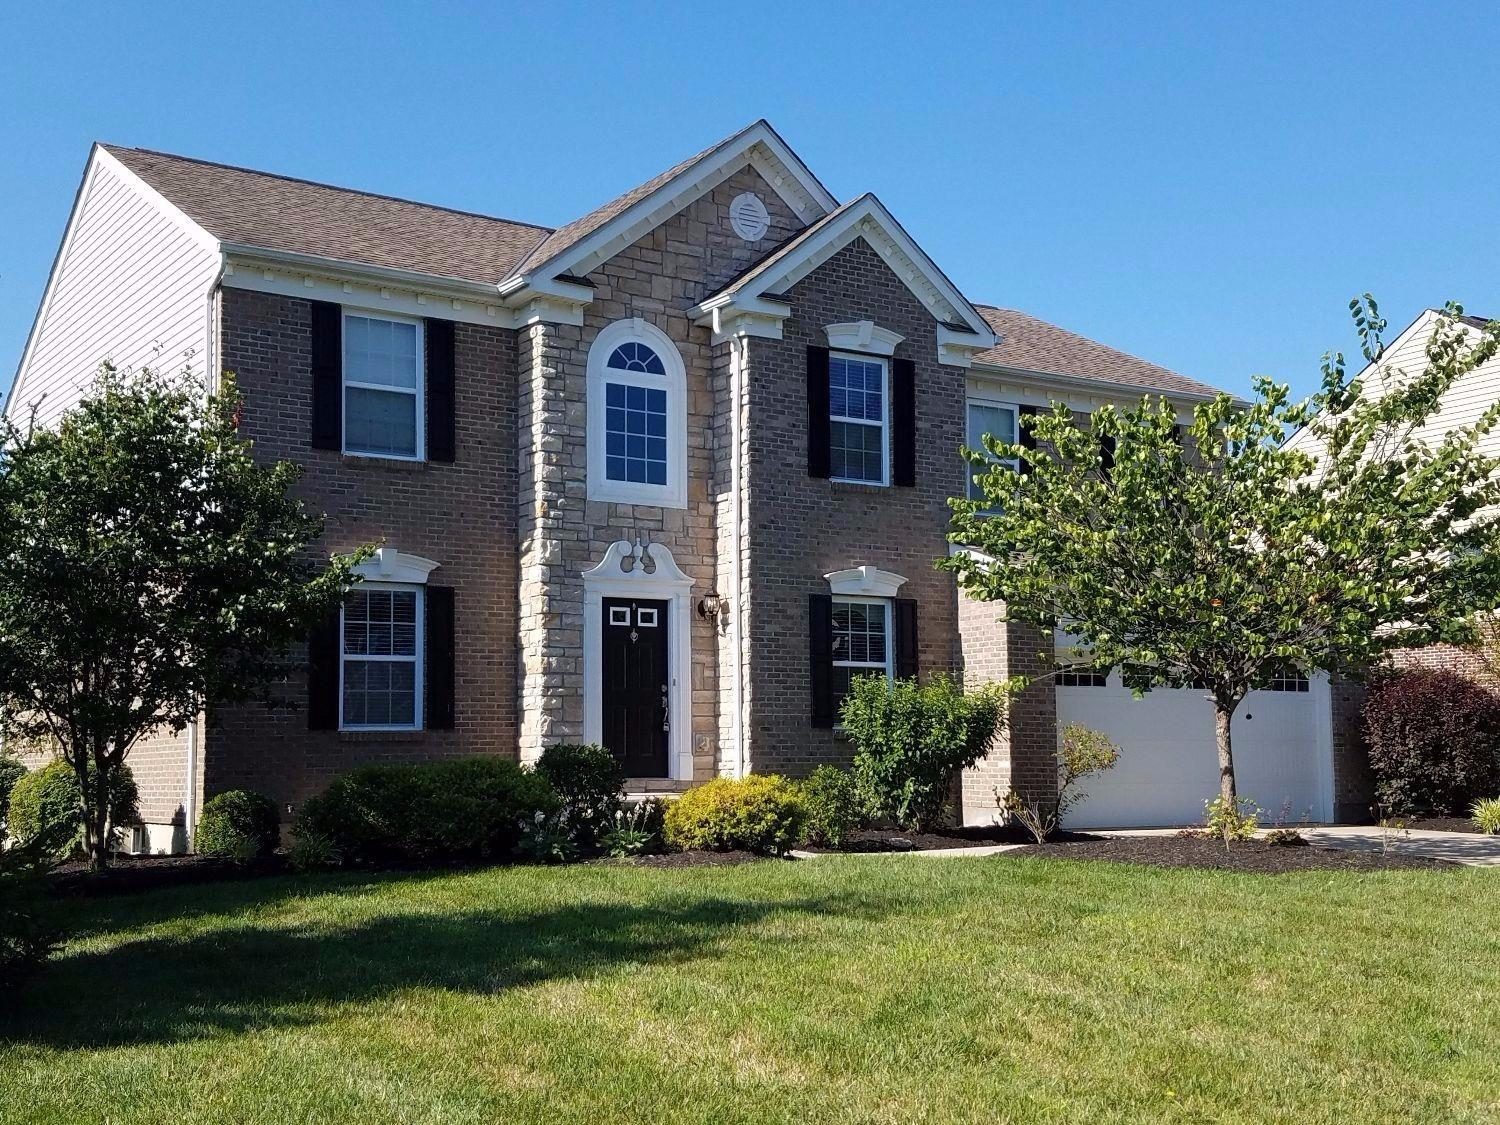 5642 Wittmer Meadows Drive, Miami Twp, OH 45150